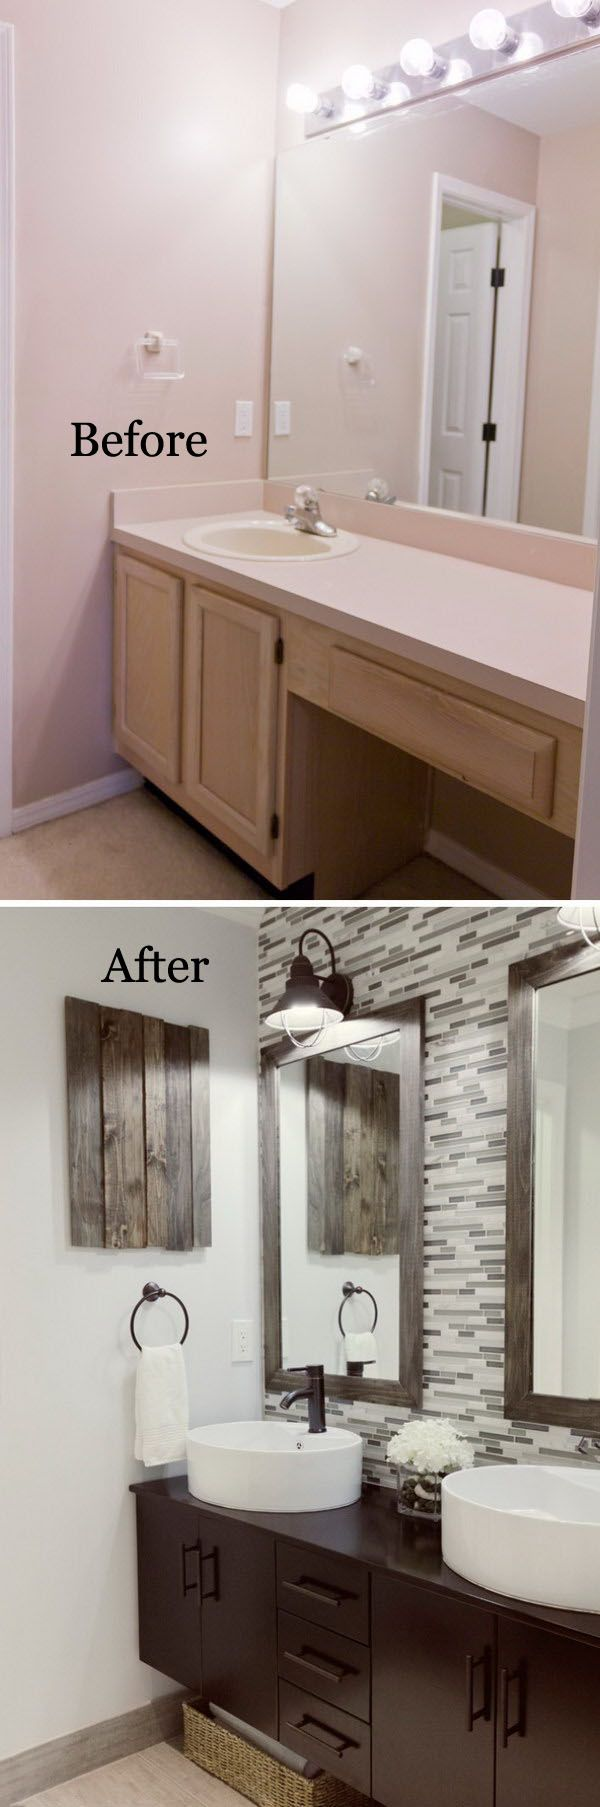 Bathroom Photos best 25+ bathroom remodeling ideas on pinterest | small bathroom